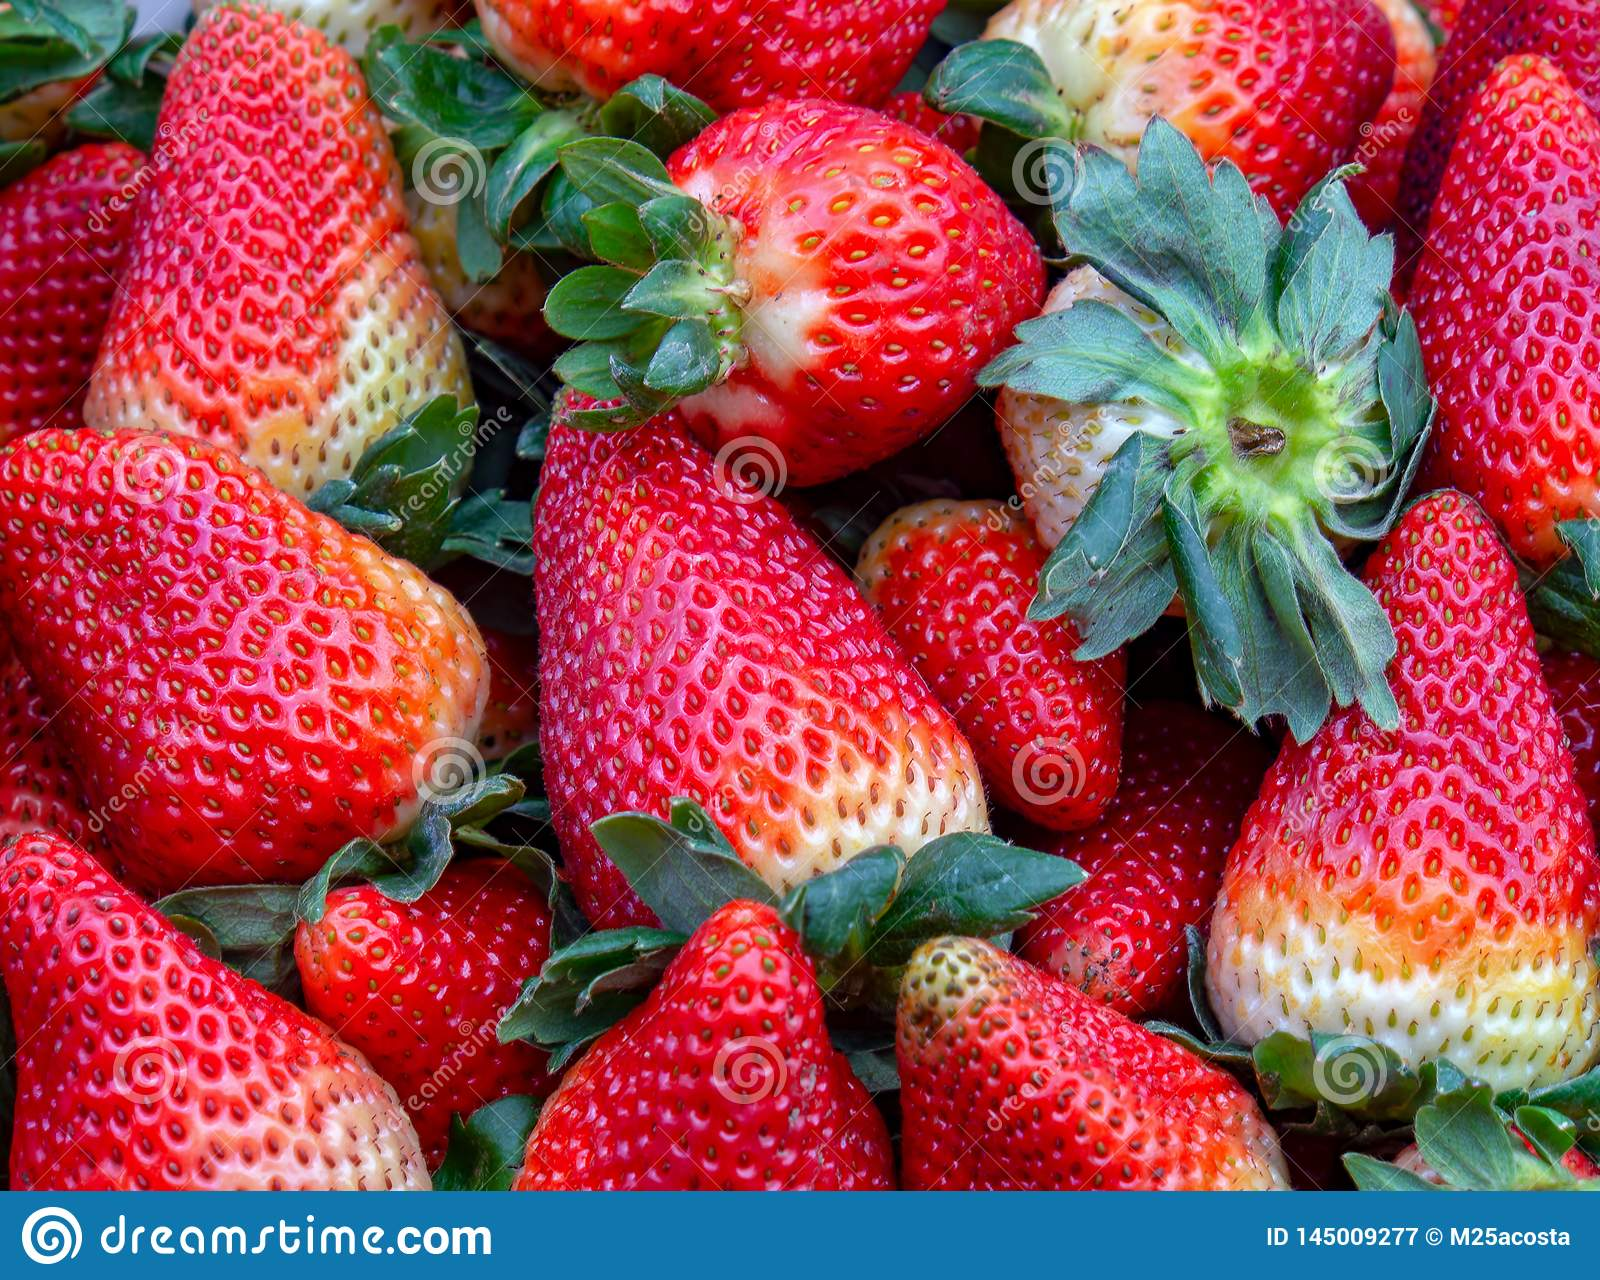 Hipe of strawberries in a market